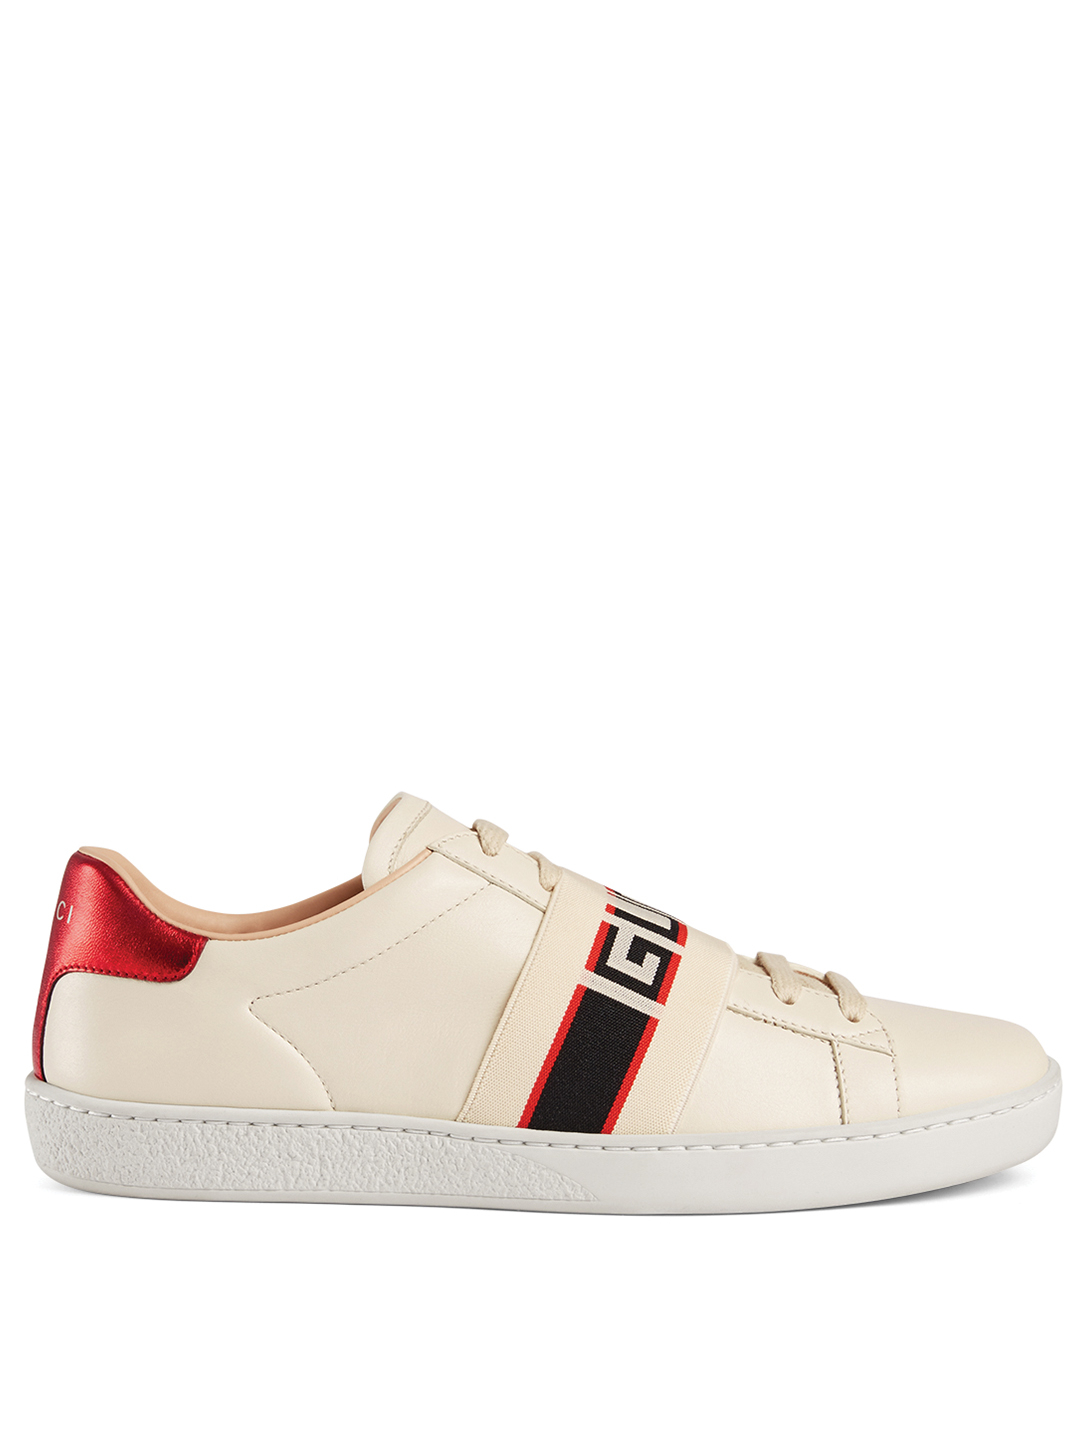 62736402639 GUCCI New Ace Leather Sneakers With Logo Strap Women s White ...